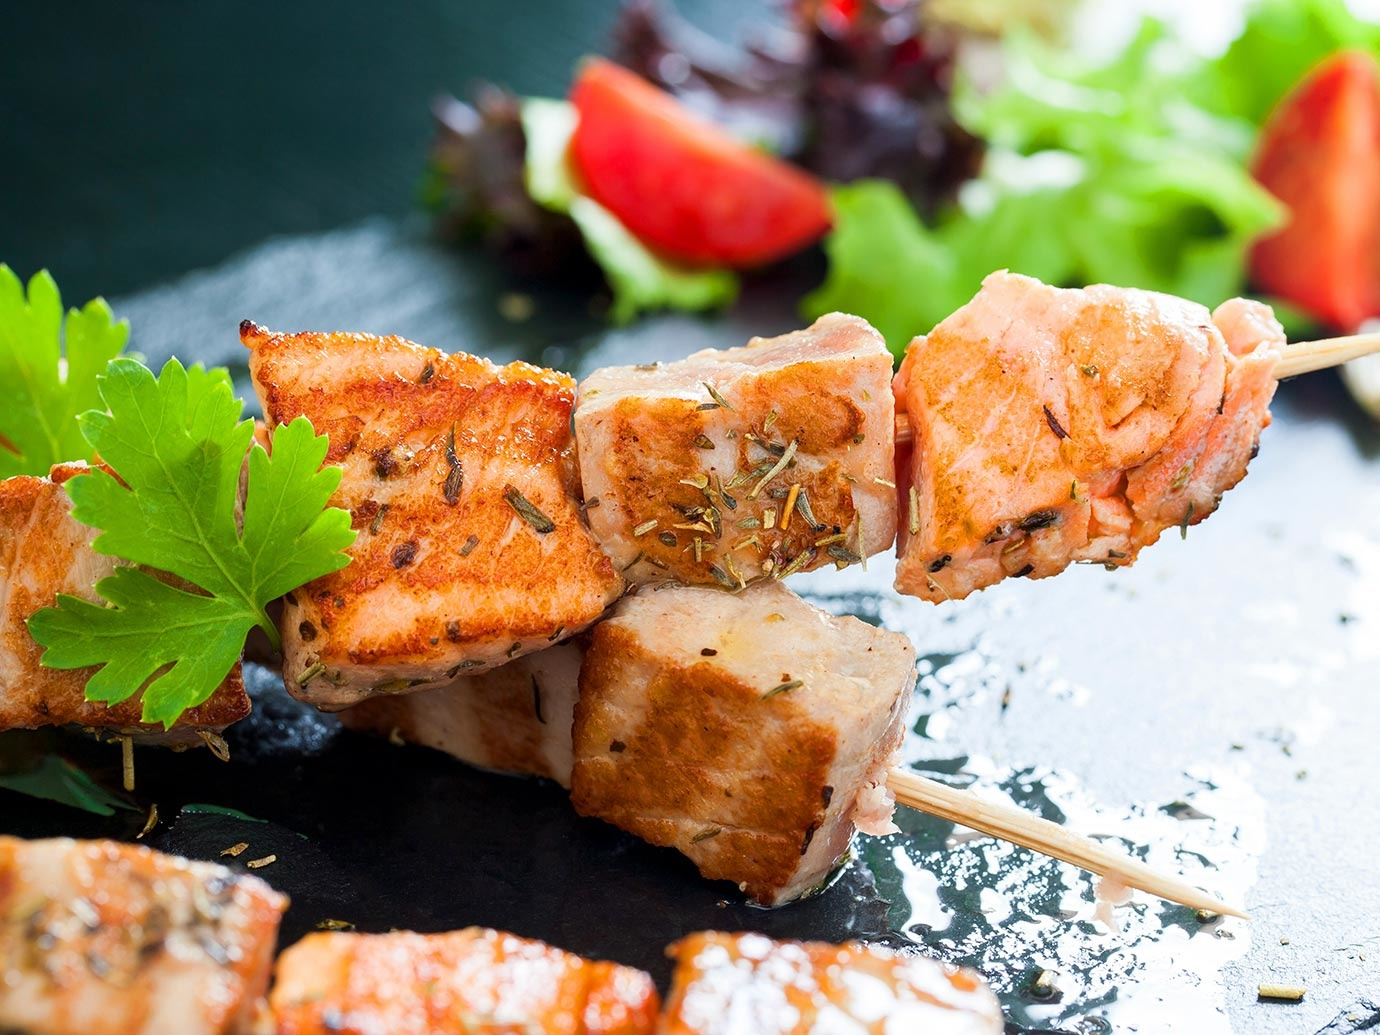 GRILLED SALMON BROCHETTE MARINATED IN TOMAHAWK BLEND